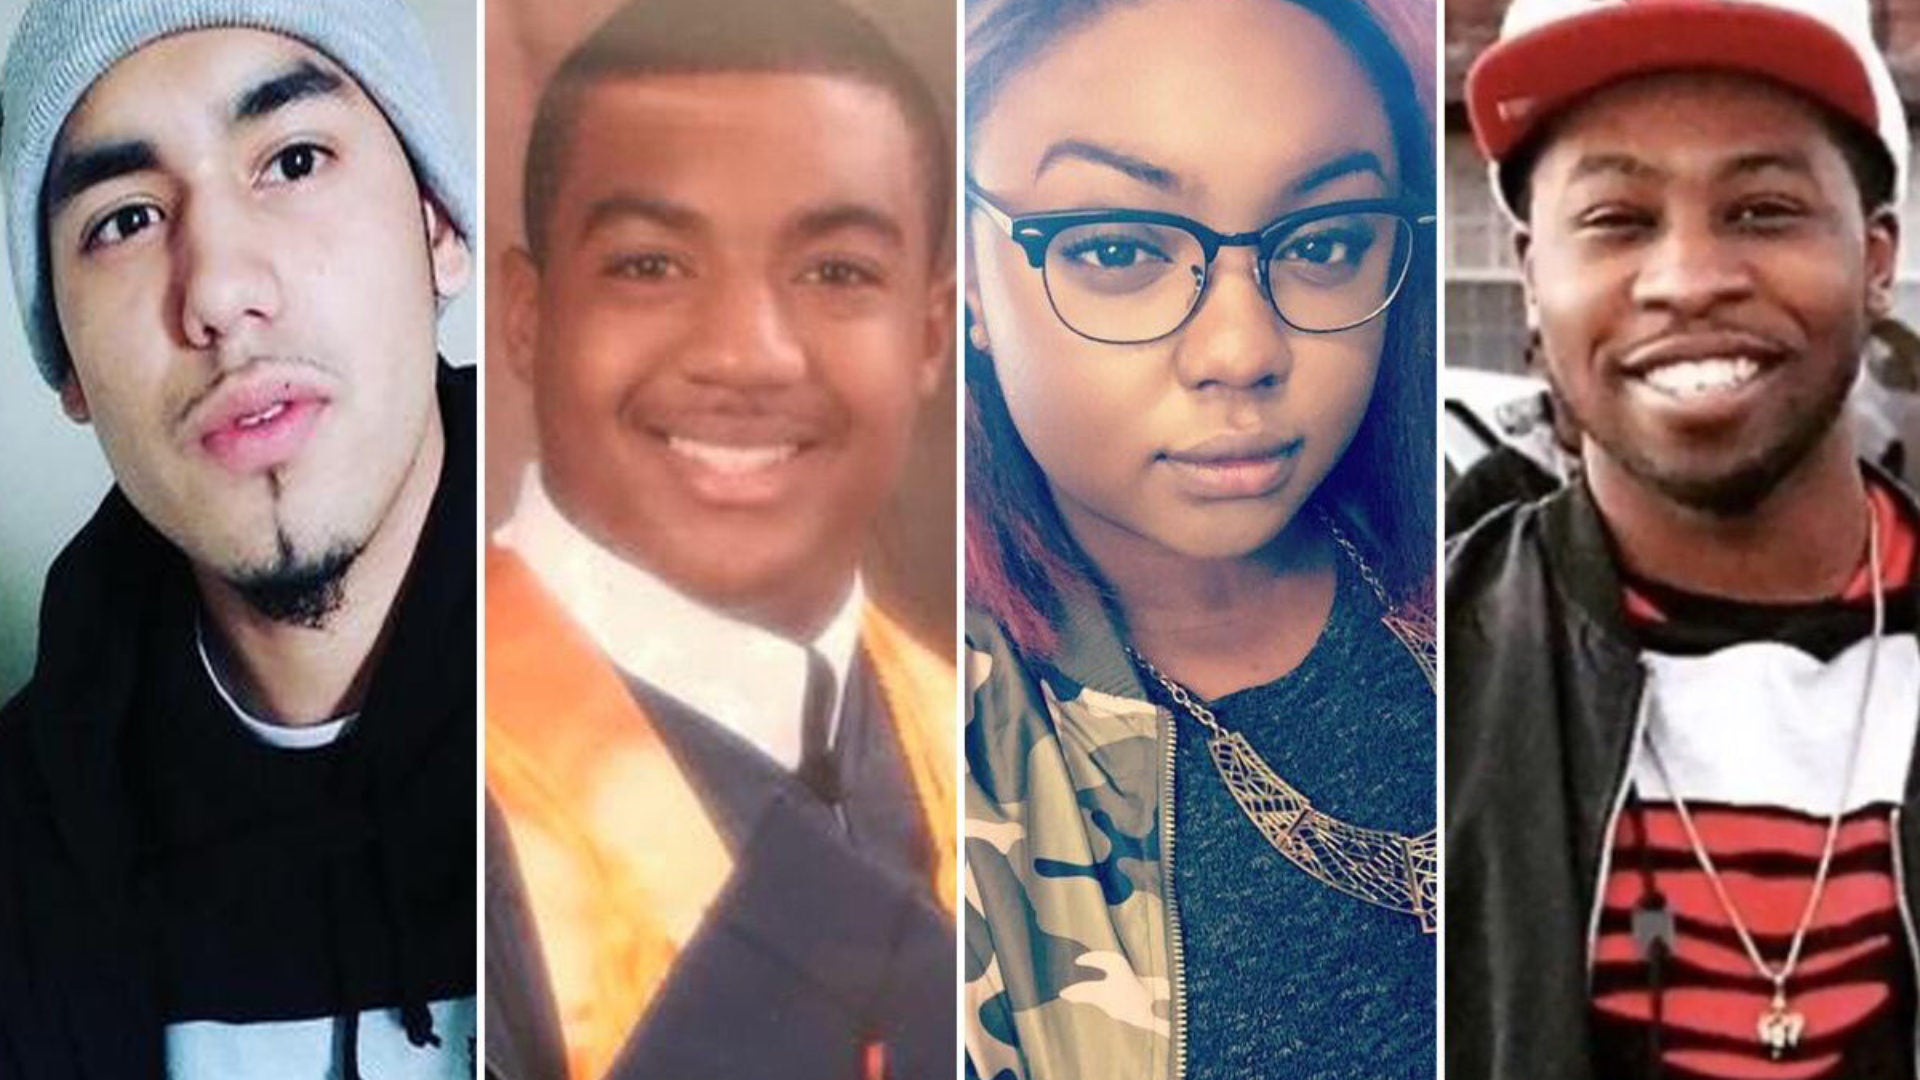 What We Know About The Four Lives Taken In The Waffle House Massacre